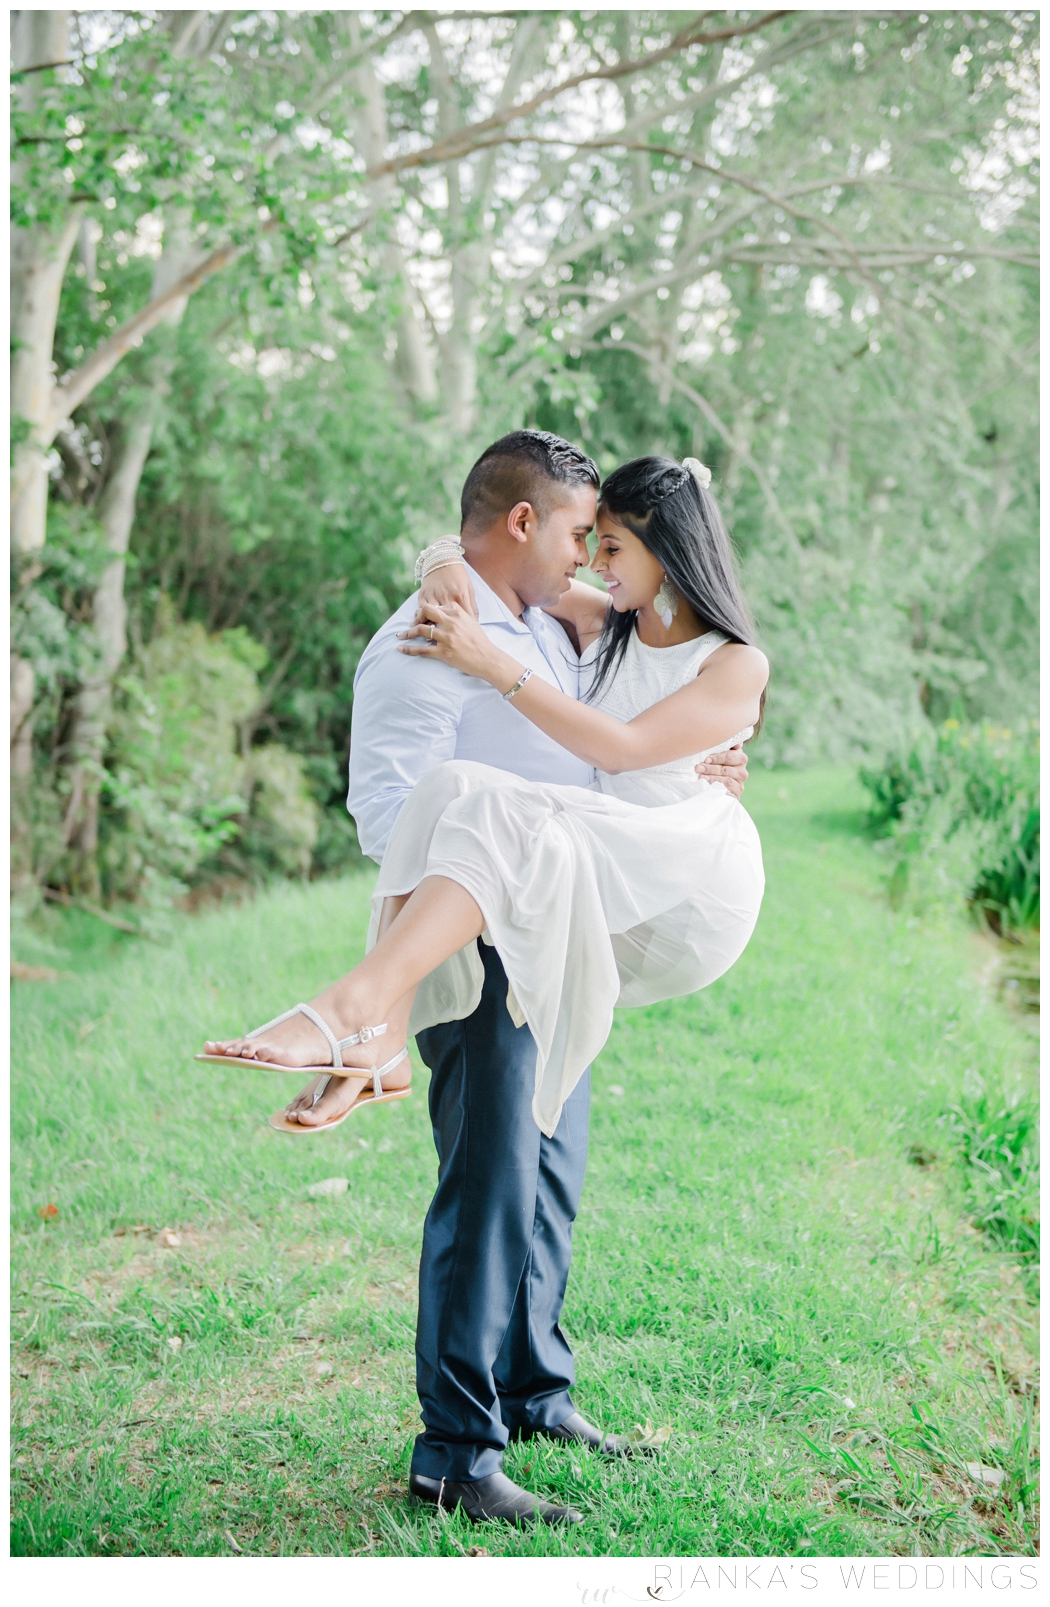 riankas-wedding-photography-toadbury-hall-engagement-risha-kreyan00019